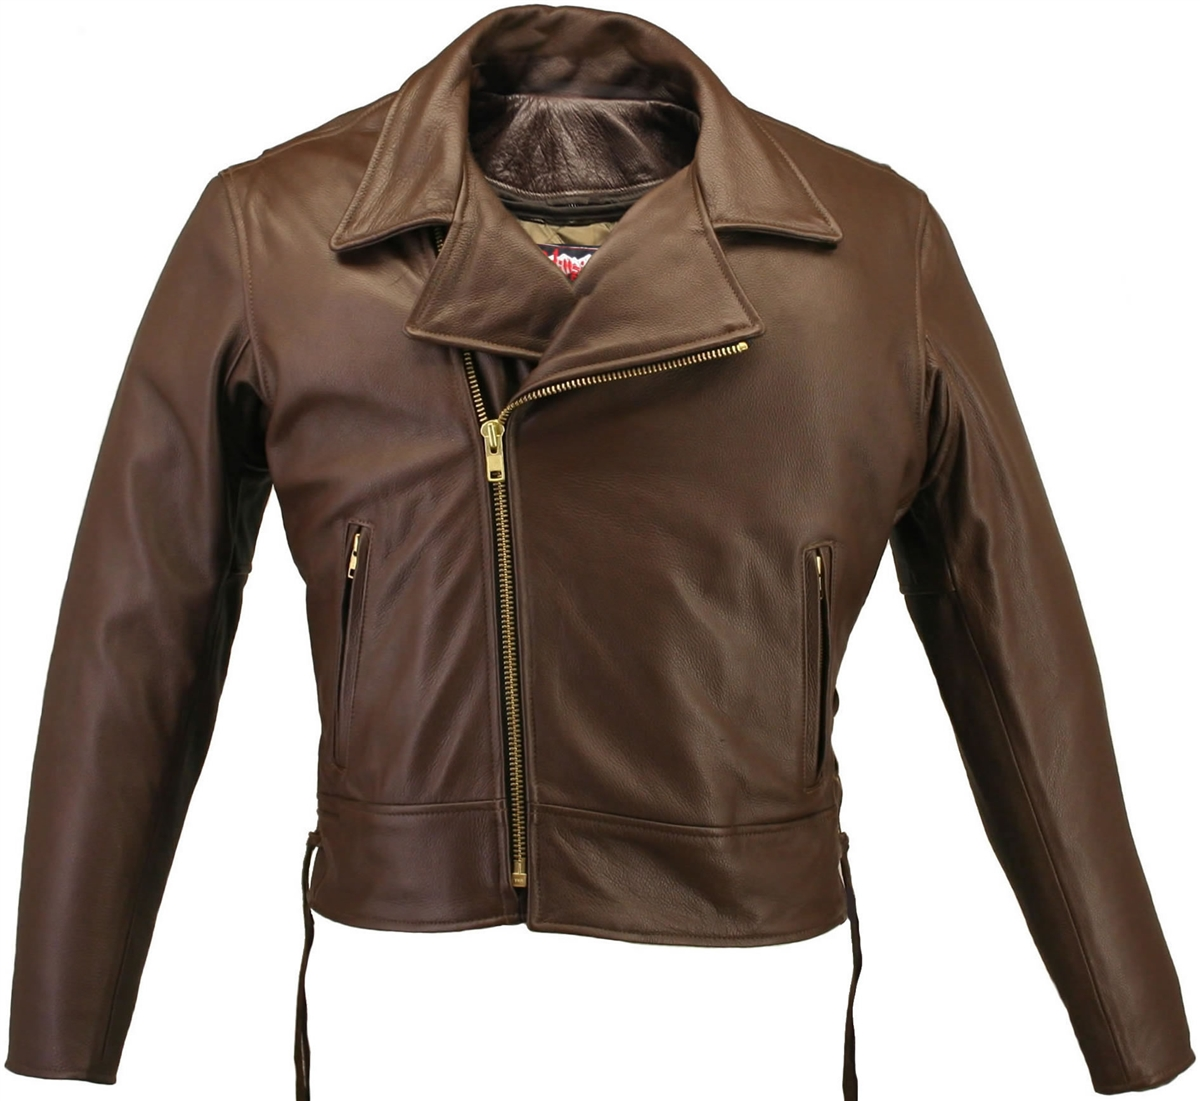 Men's Beltless Brown Biker Jacket